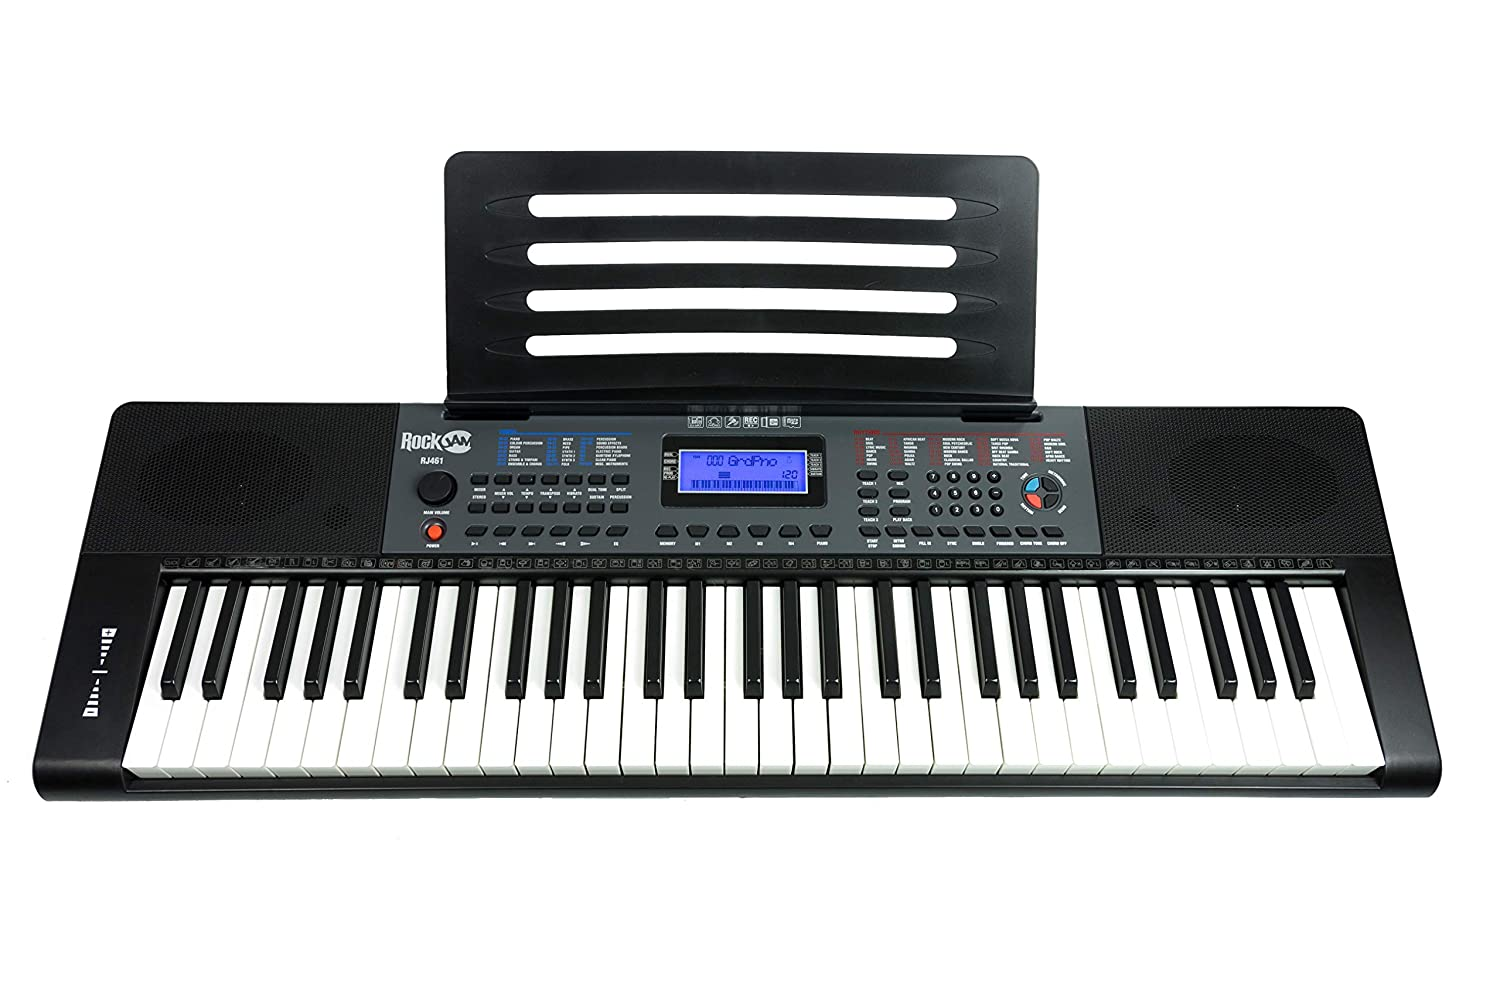 RockJam Portable Keyboard, 61 Key (RJ461)